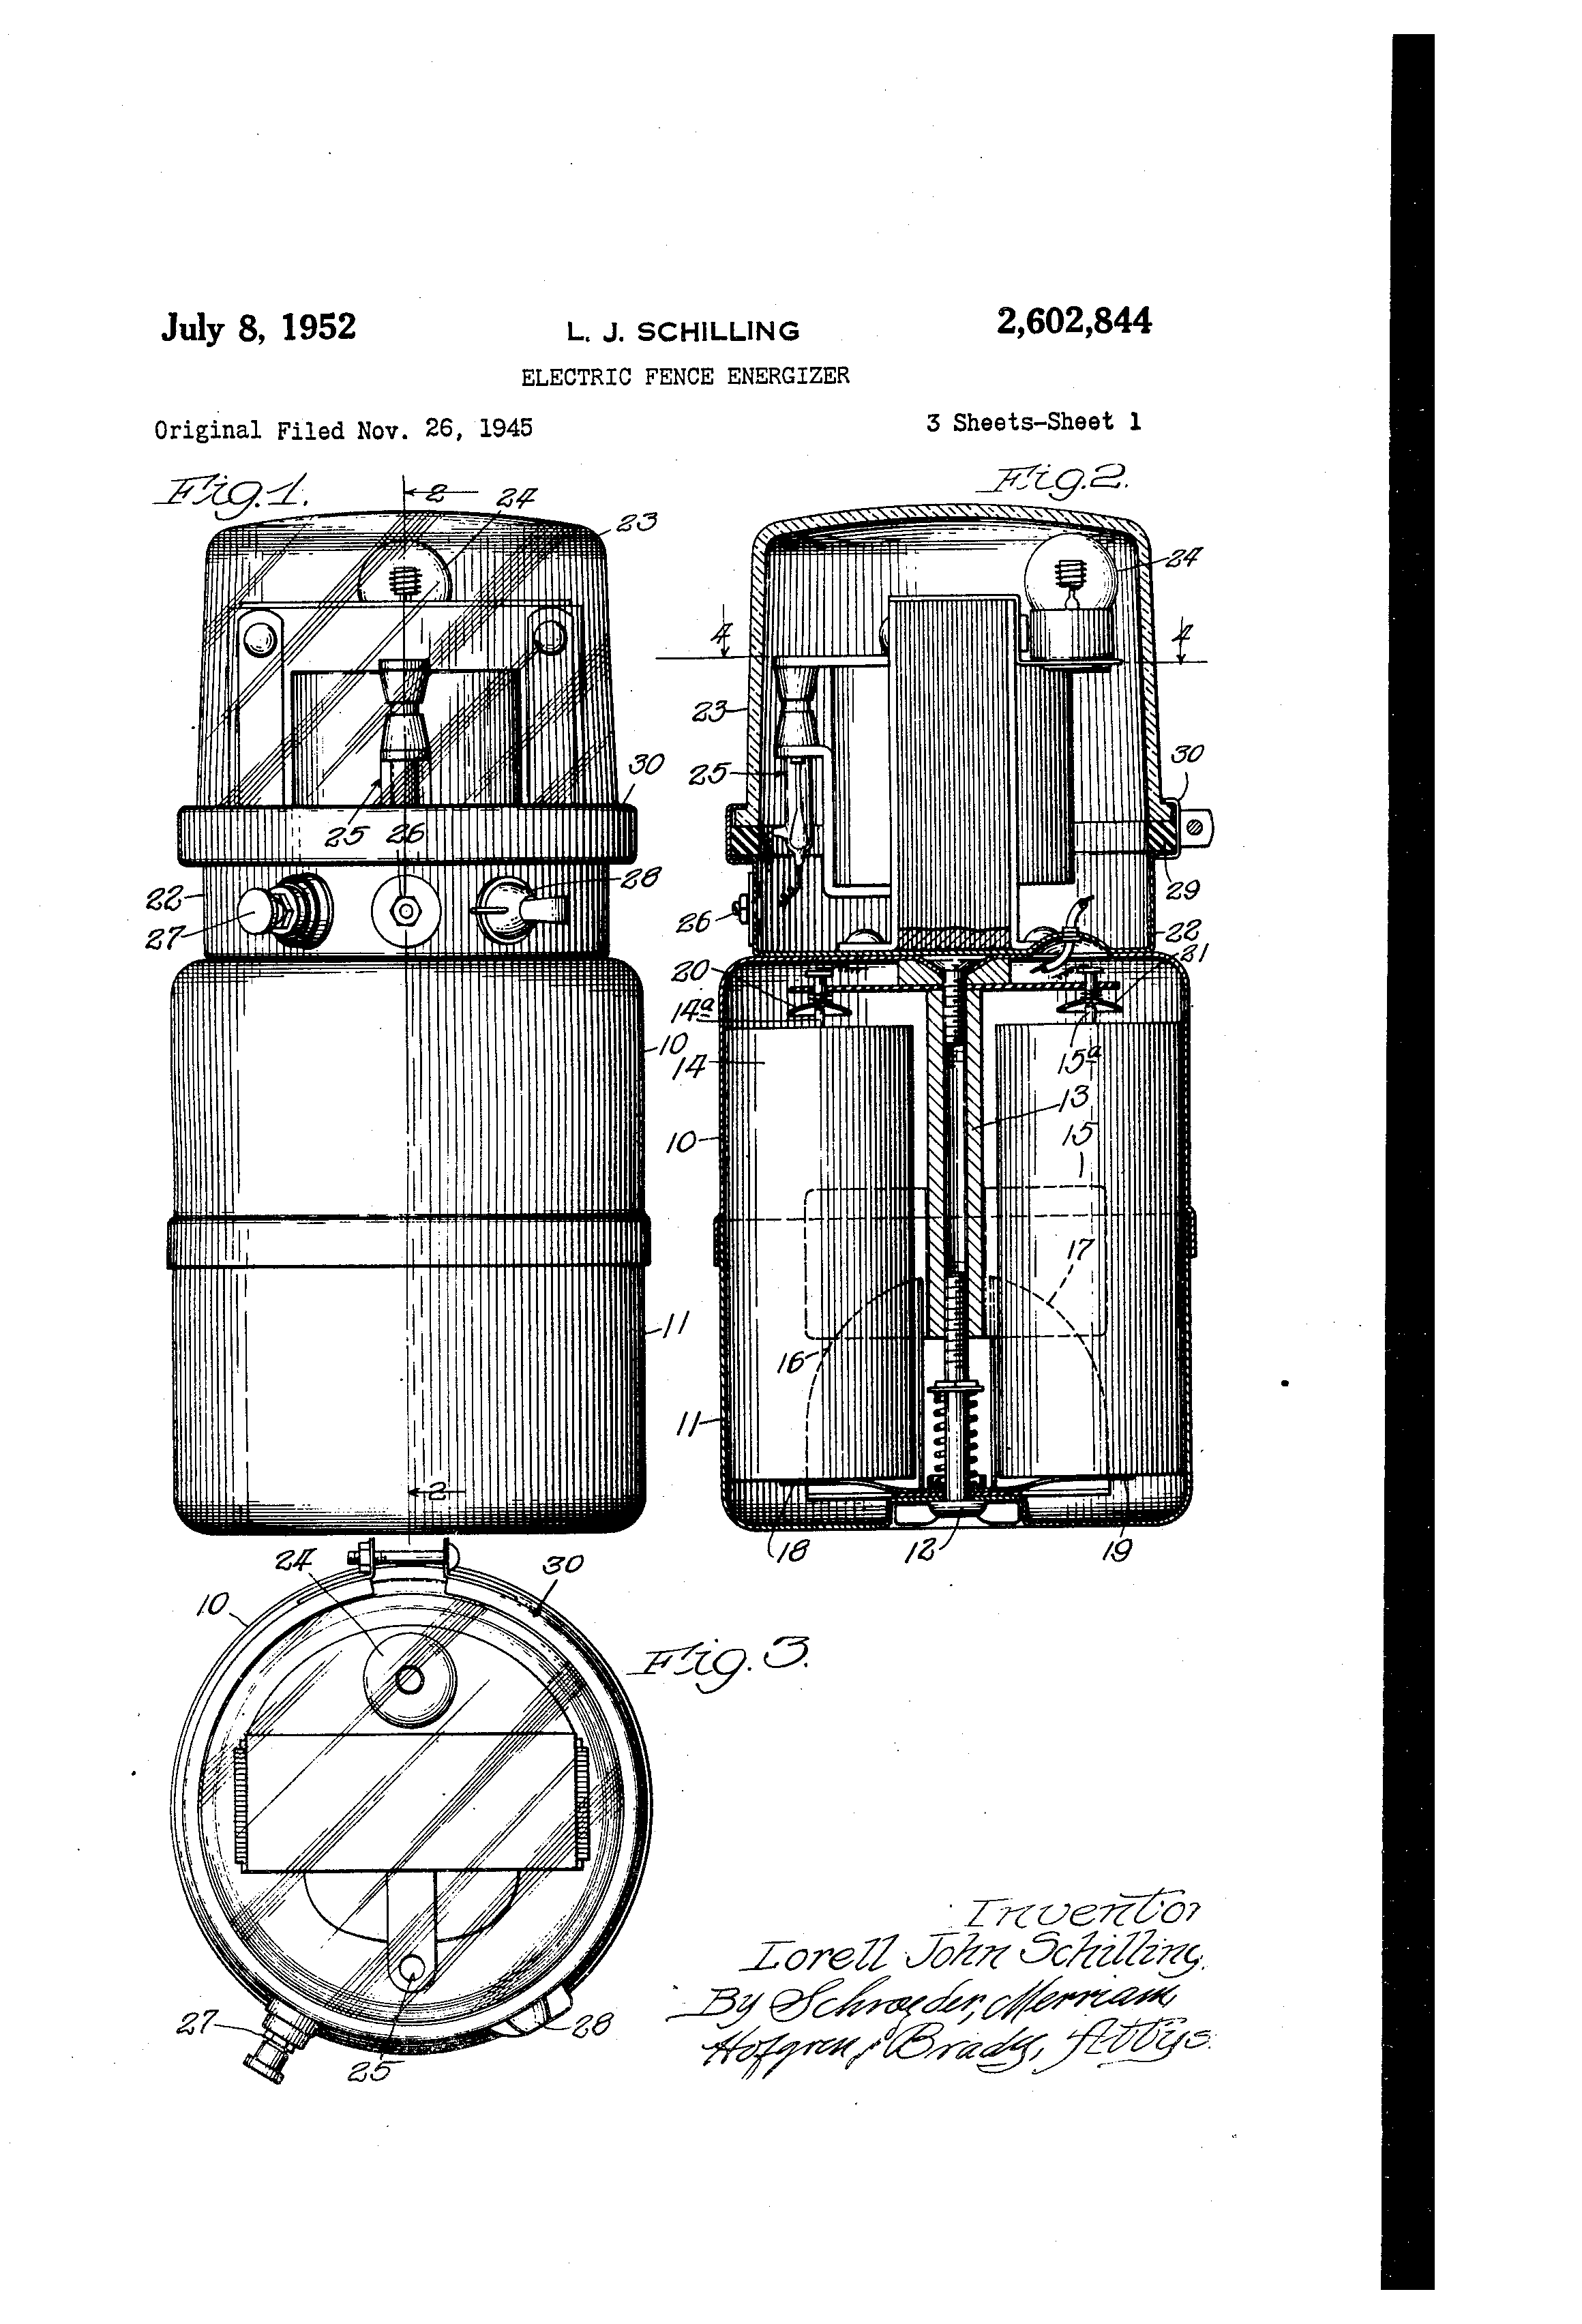 patent us2602844 - electric fence energizer